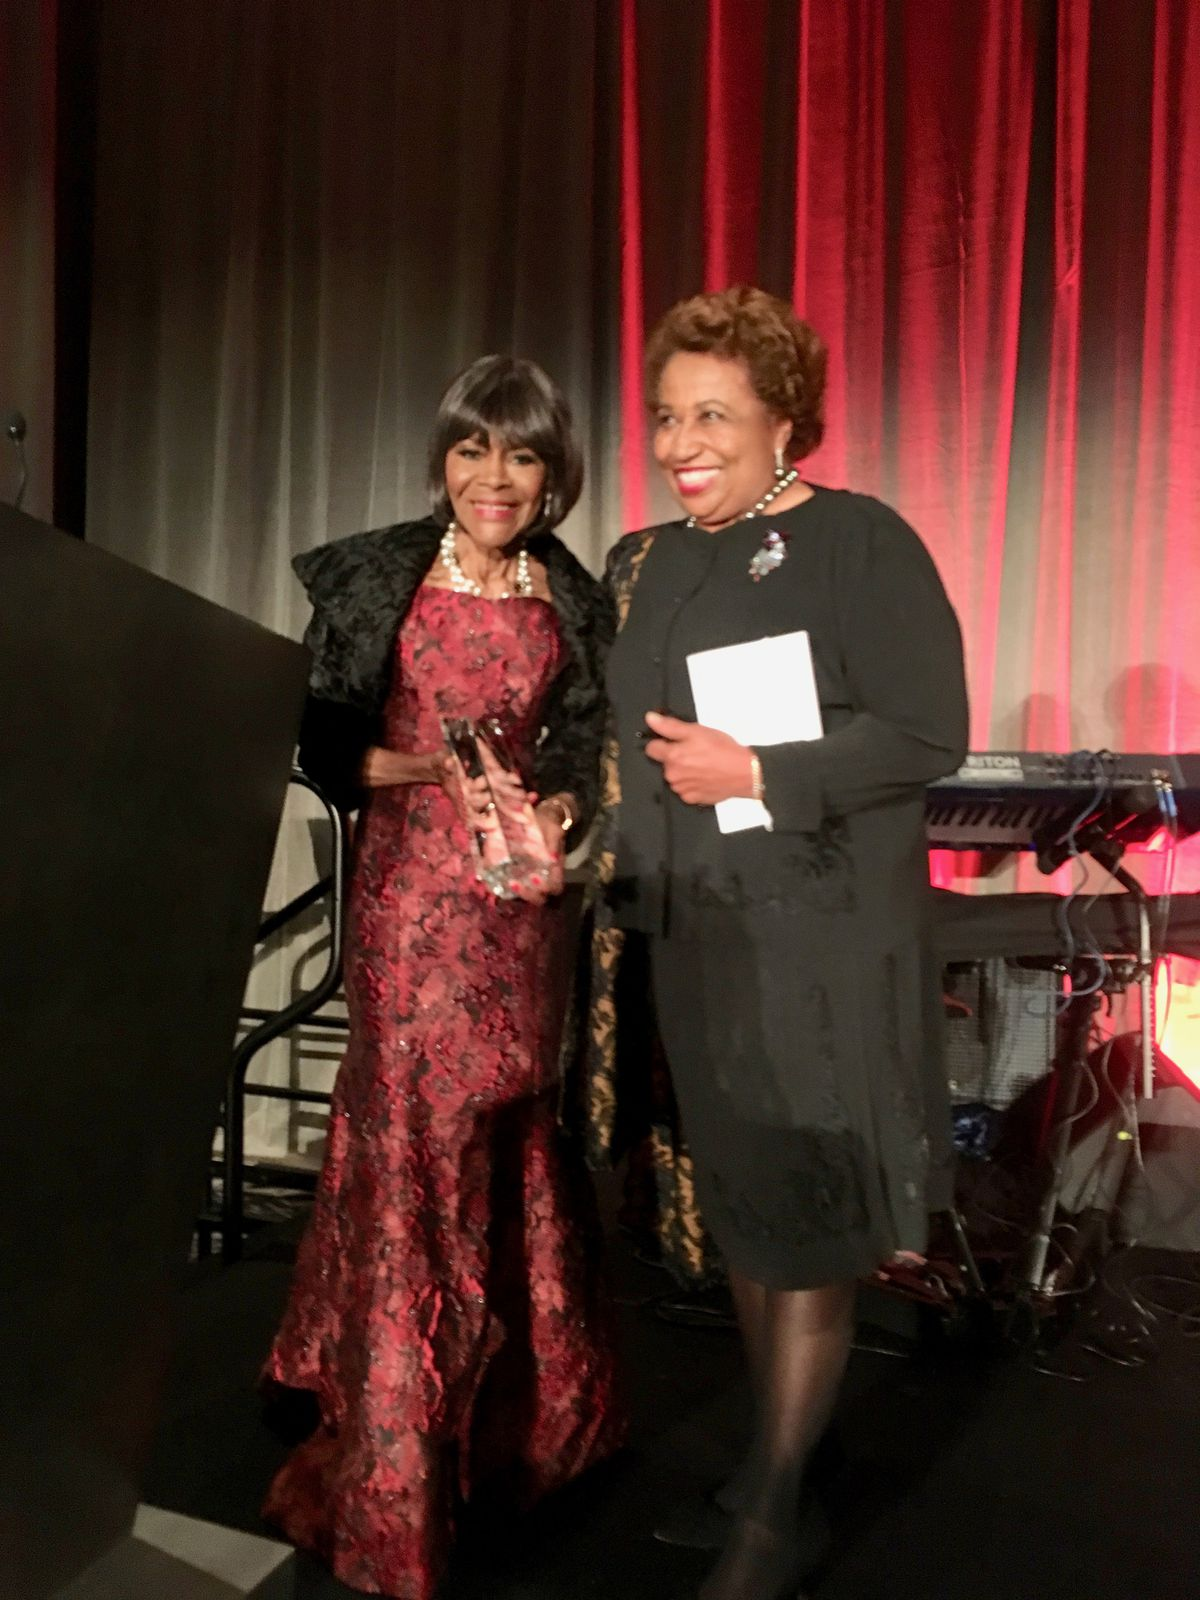 When the legendary actress Cicely Tyson headlined the DuSable Museum of African American History's Annual Night of 100 Stars Gala in Chicago on Oct. 12, 2018, she was introduced by former U.S. Sen. Carol Moseley Braun.